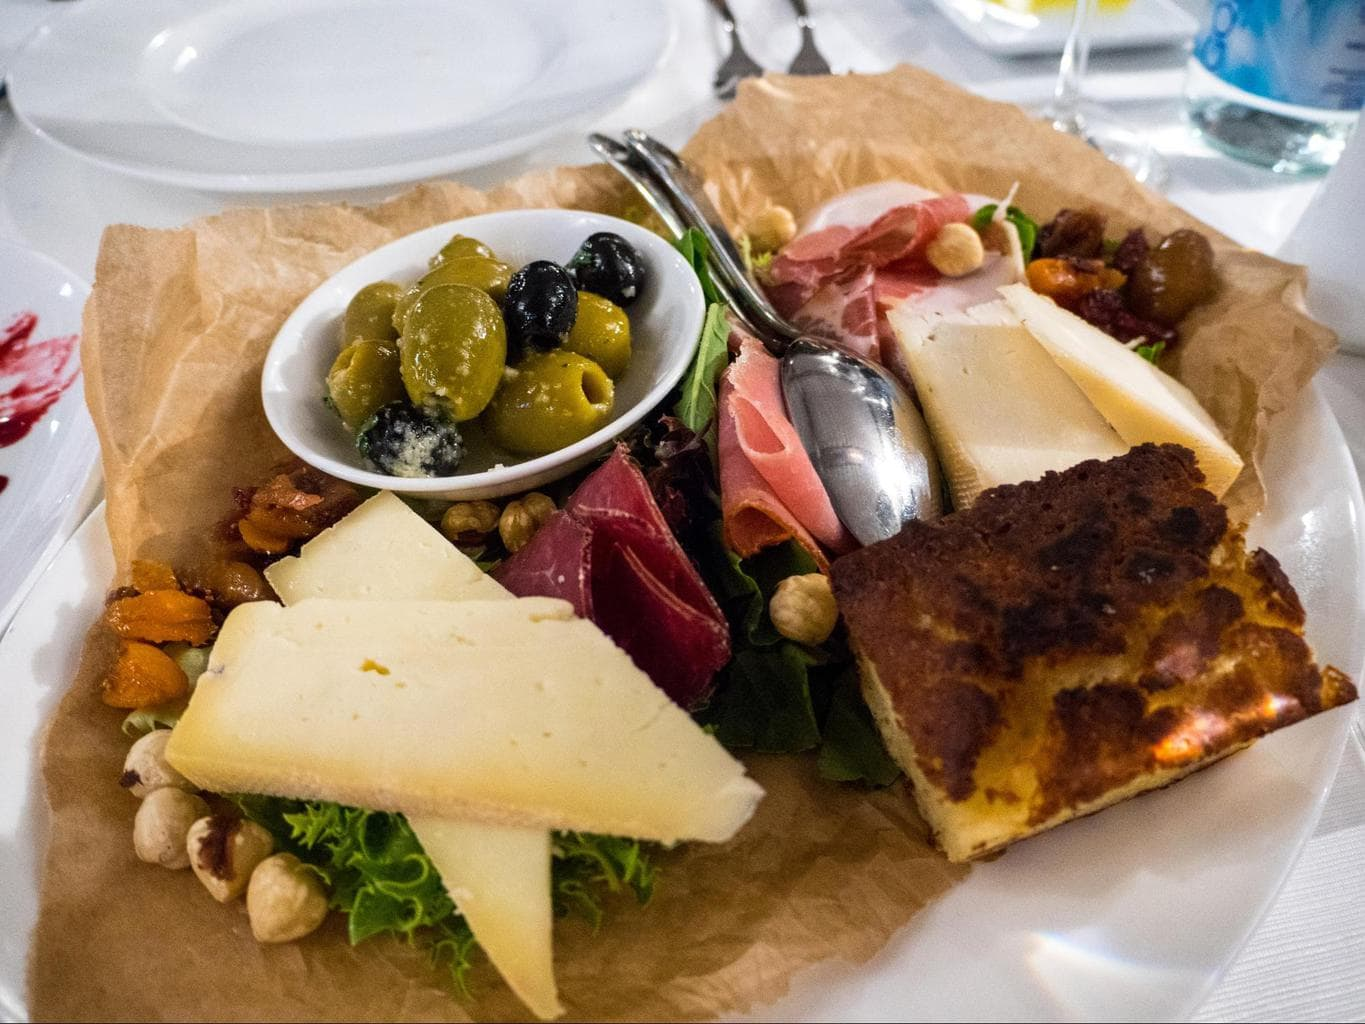 Starter of cheese and cold cuts